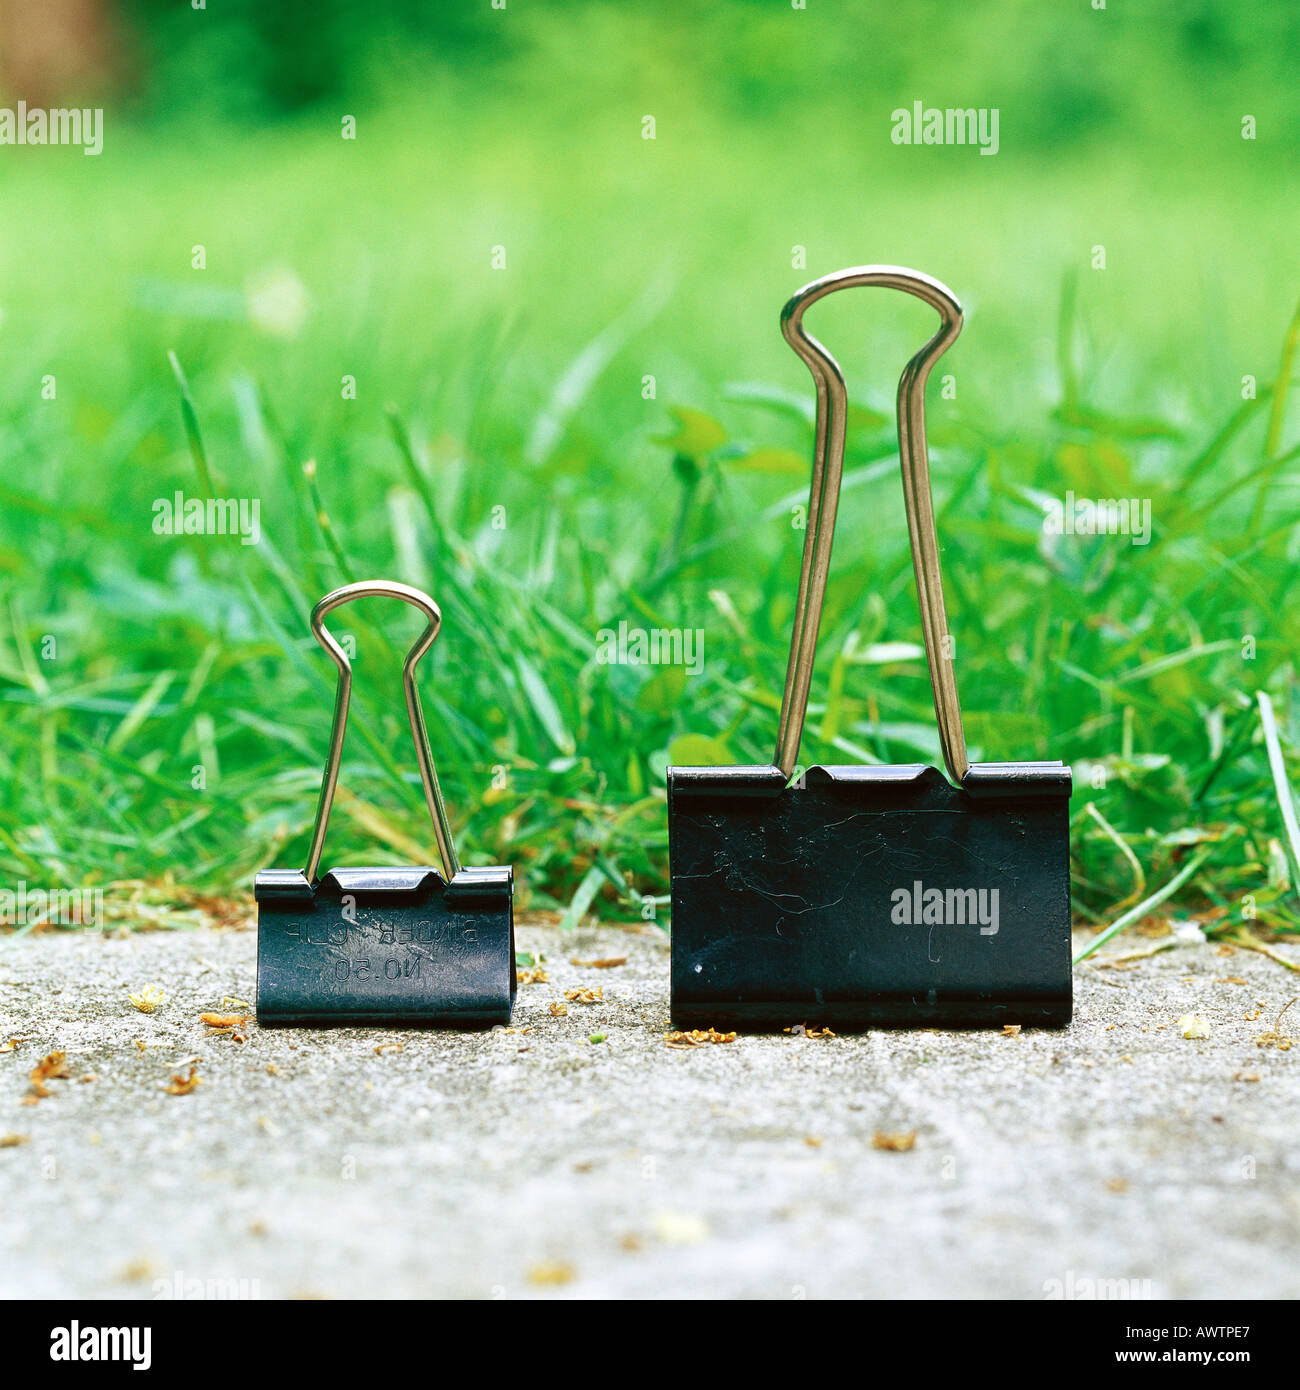 Binder clips on sidewalk Photo Stock